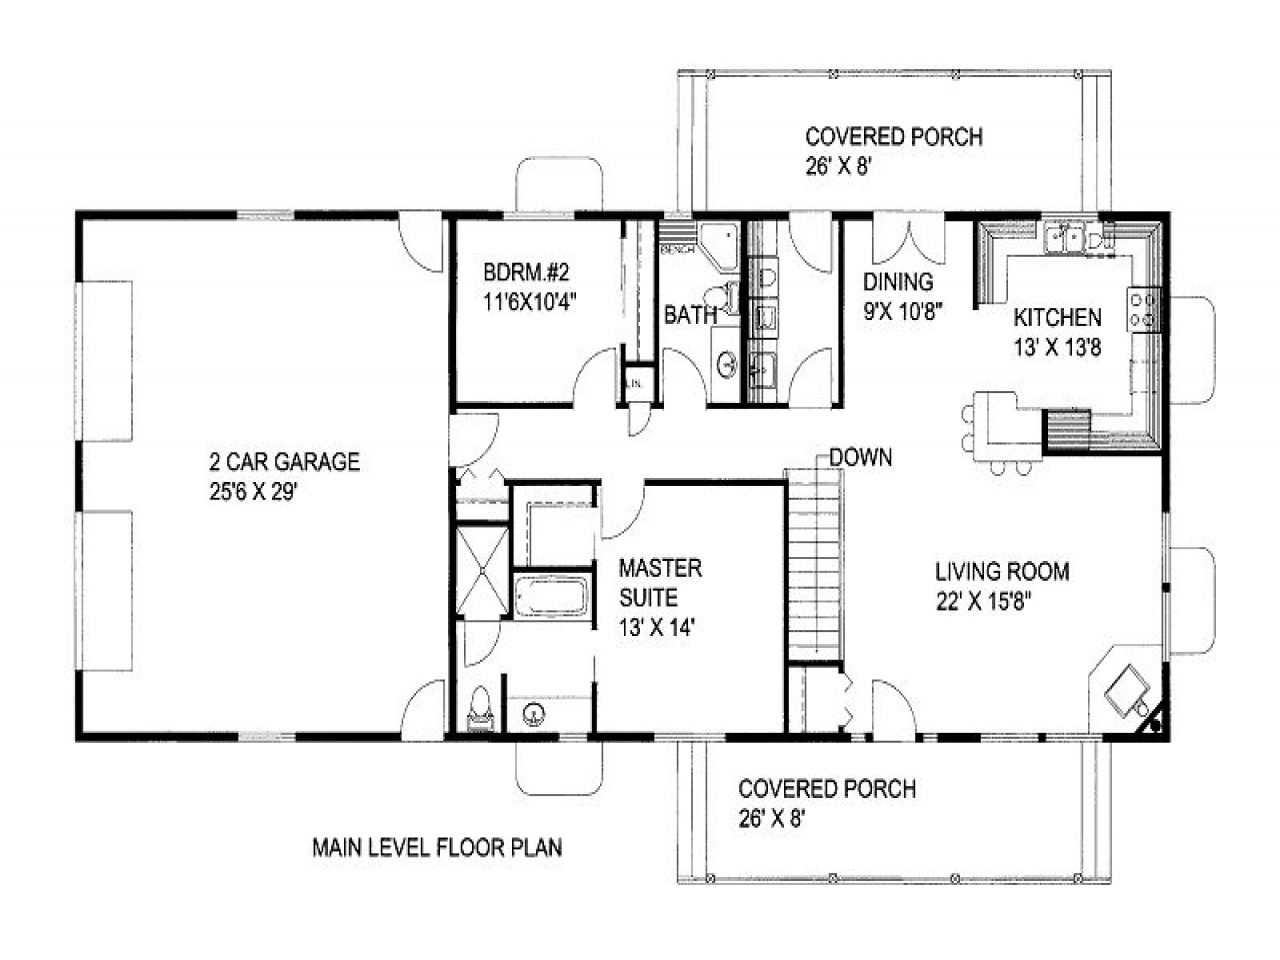 1500 Square Foot House Plans 2 Bedroom 1300 Square Foot House House Plan 1500 Sq Ft